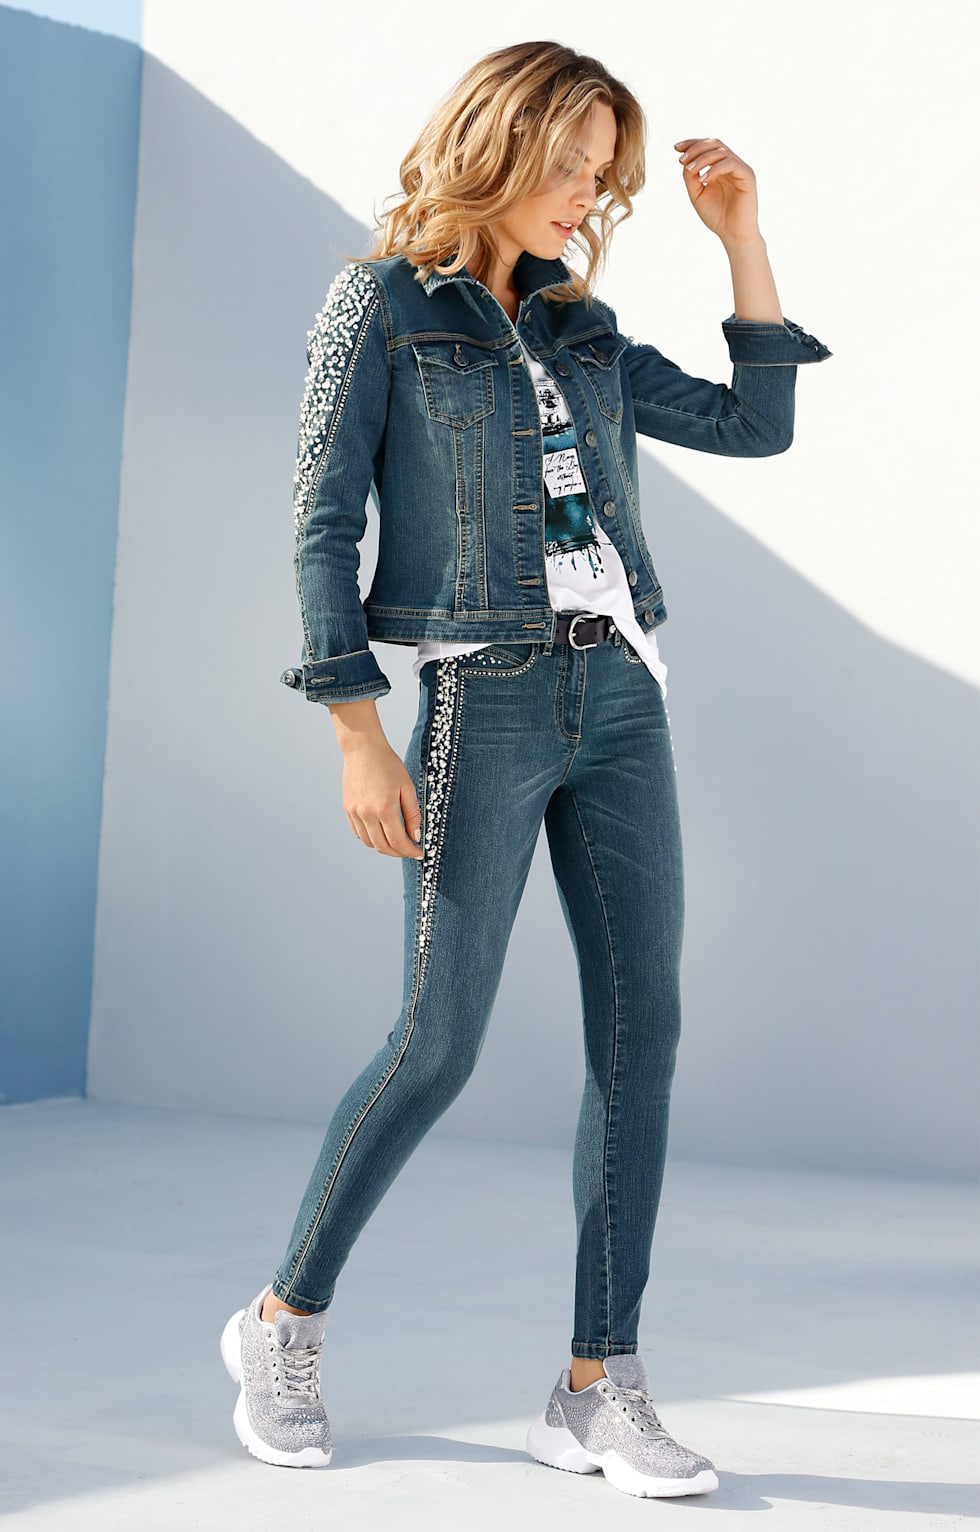 Home_HW20_KW31_32_Trendoutfit_Denim Love_Outfit